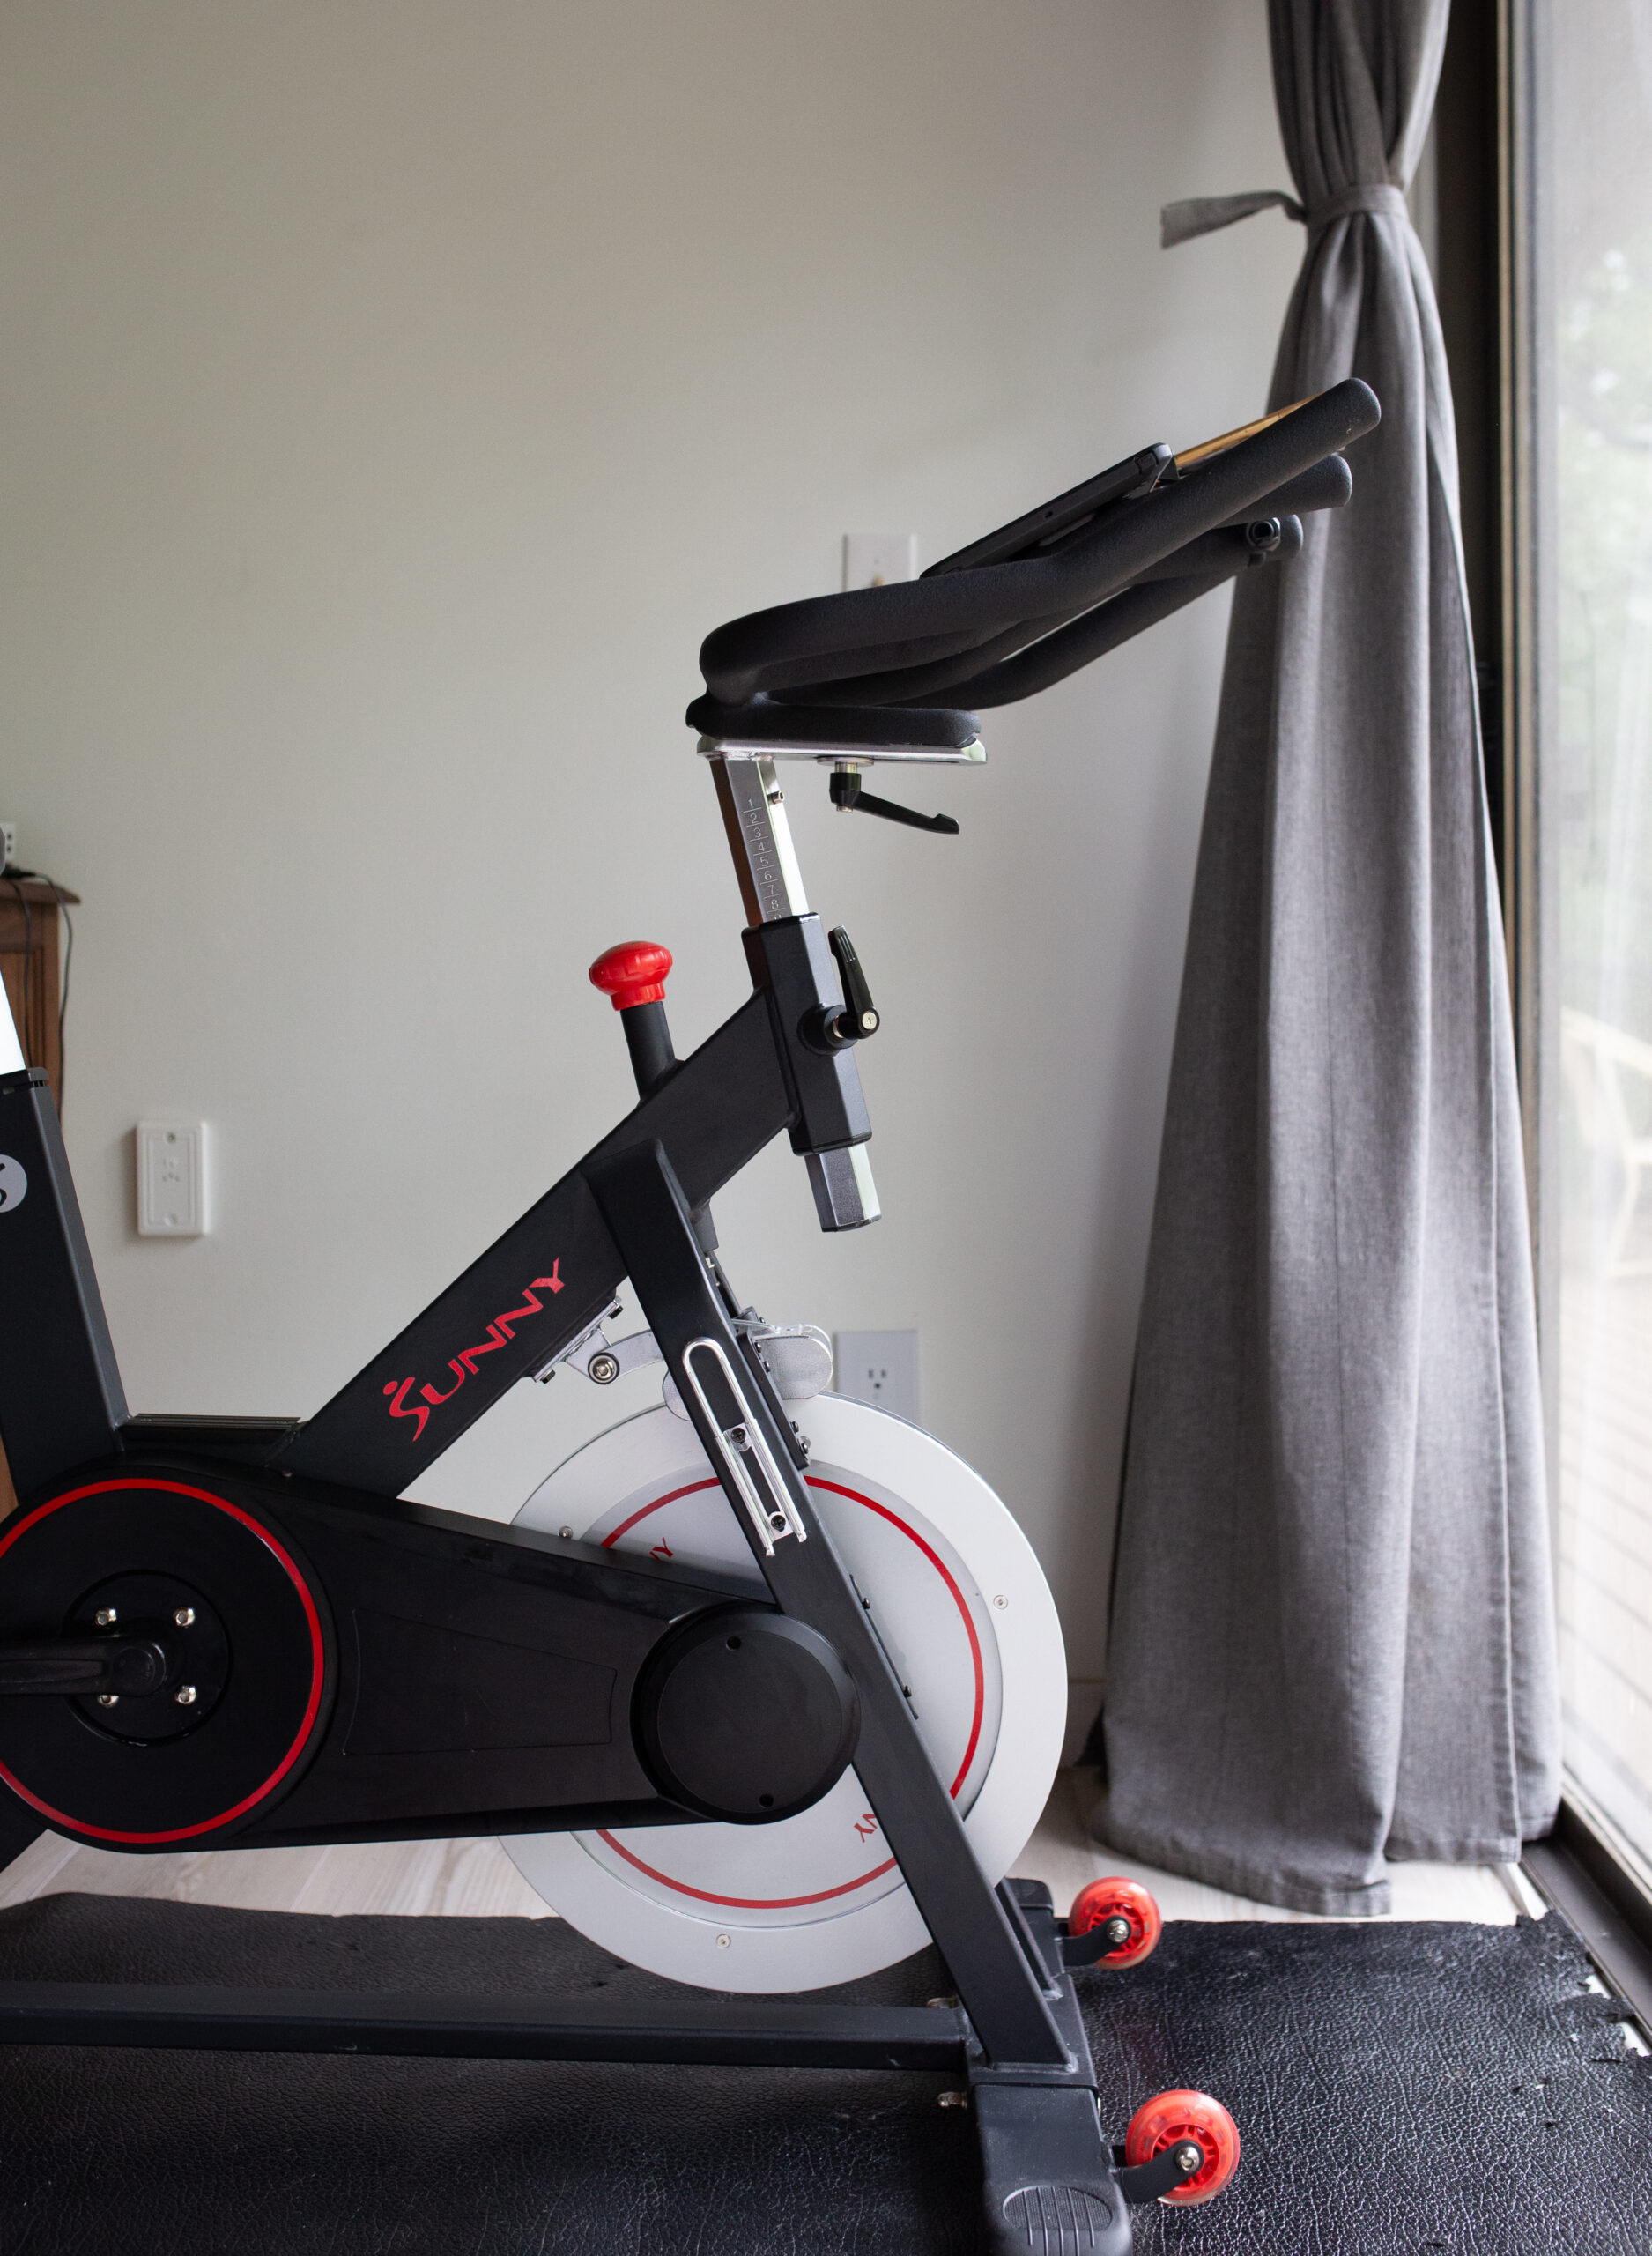 How to get the Peloton Experience with a non-Peloton bike. Here's how we saved $3000 using a cheaper bike and cadence sensor.